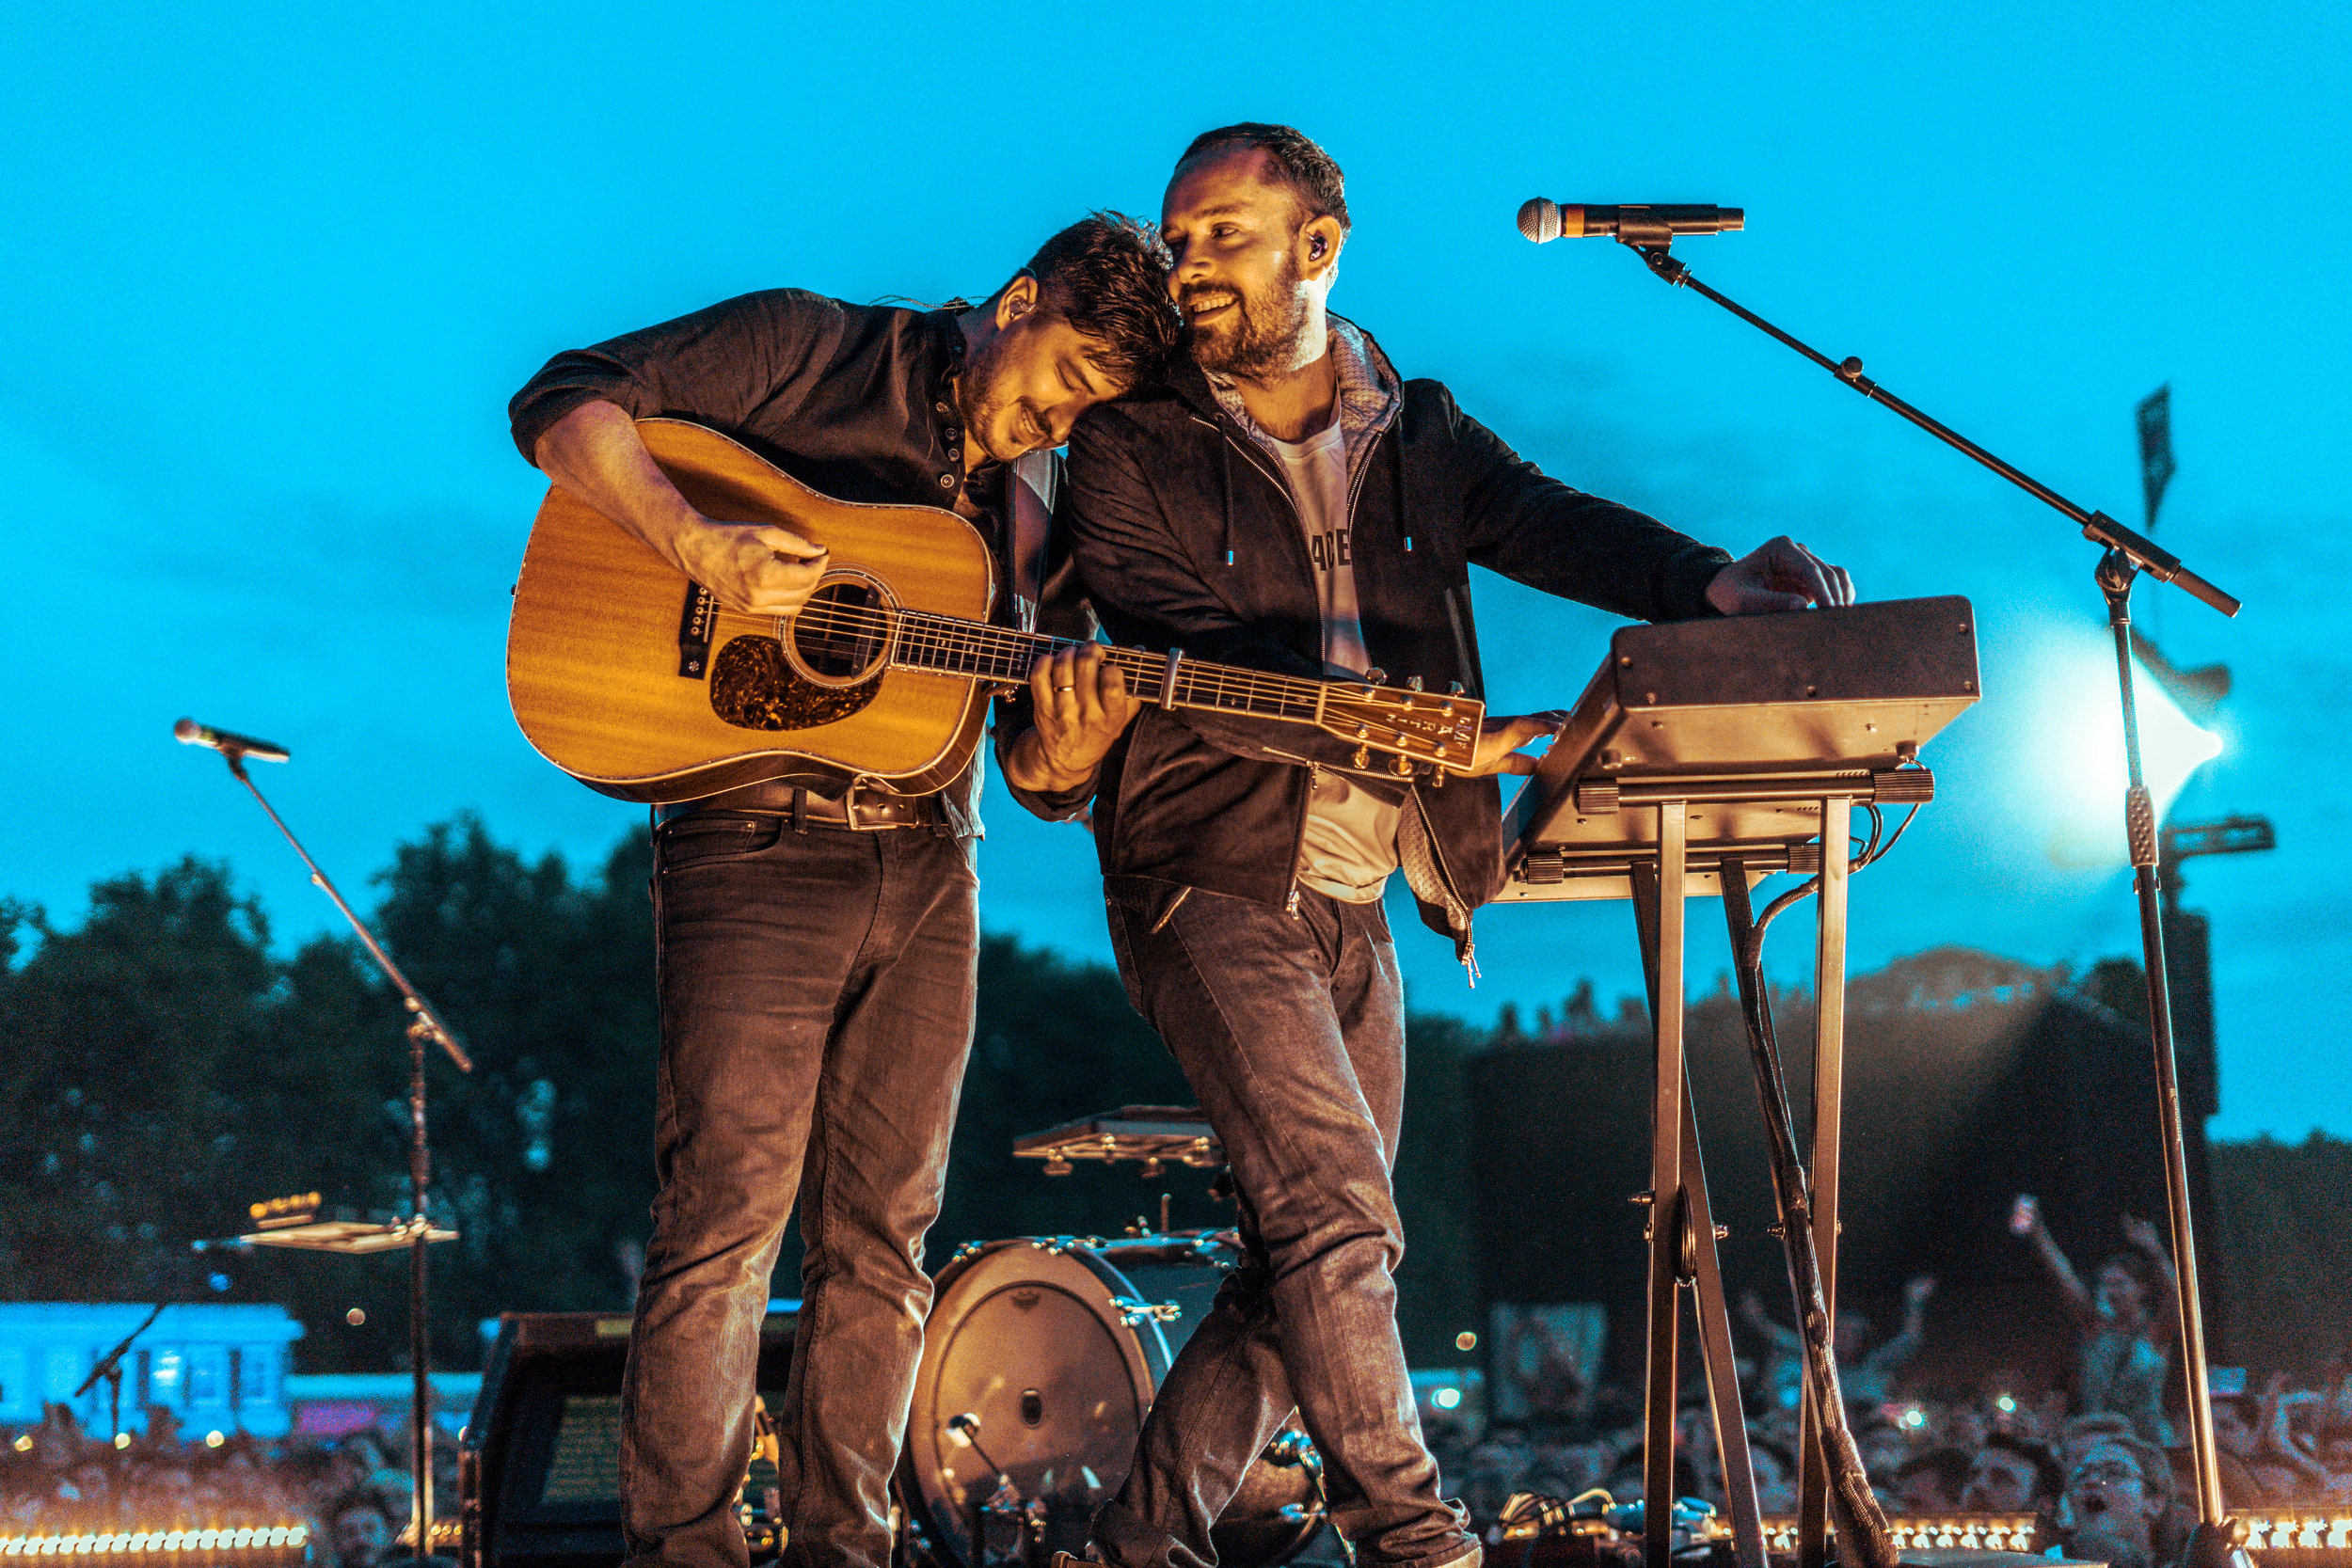 MUMFORD & SONS HEADLINING ALL POINTS EAST FESTIVAL - 01.06.2019  PICTURE BY: HOLLIE TURNER PHOTOGRAPHY